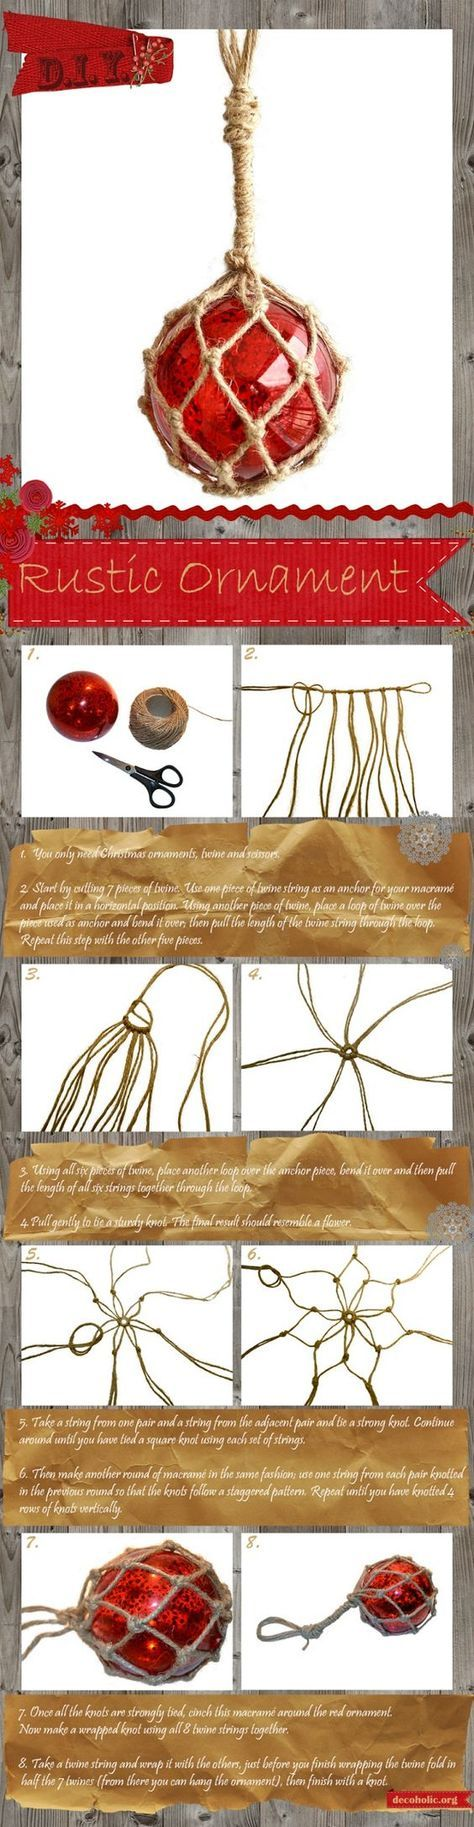 How to make a rustic macramé Christmas ornament. Super easy and inexpensive.: